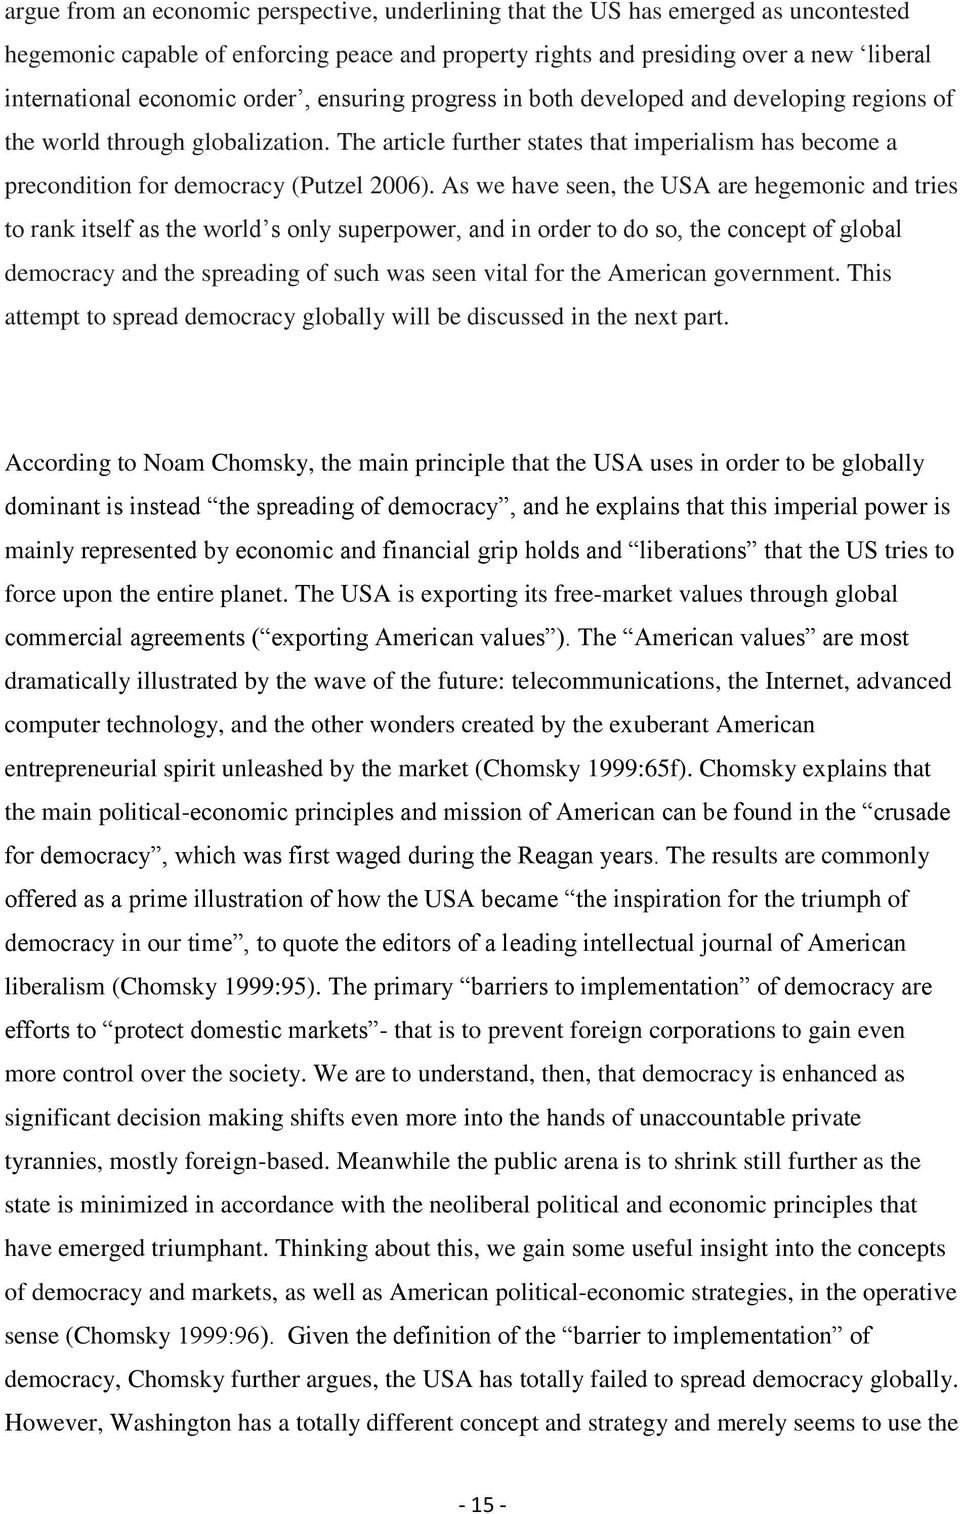 As we have seen, the USA are hegemonic and tries to rank itself as the world s only superpower, and in order to do so, the concept of global democracy and the spreading of such was seen vital for the